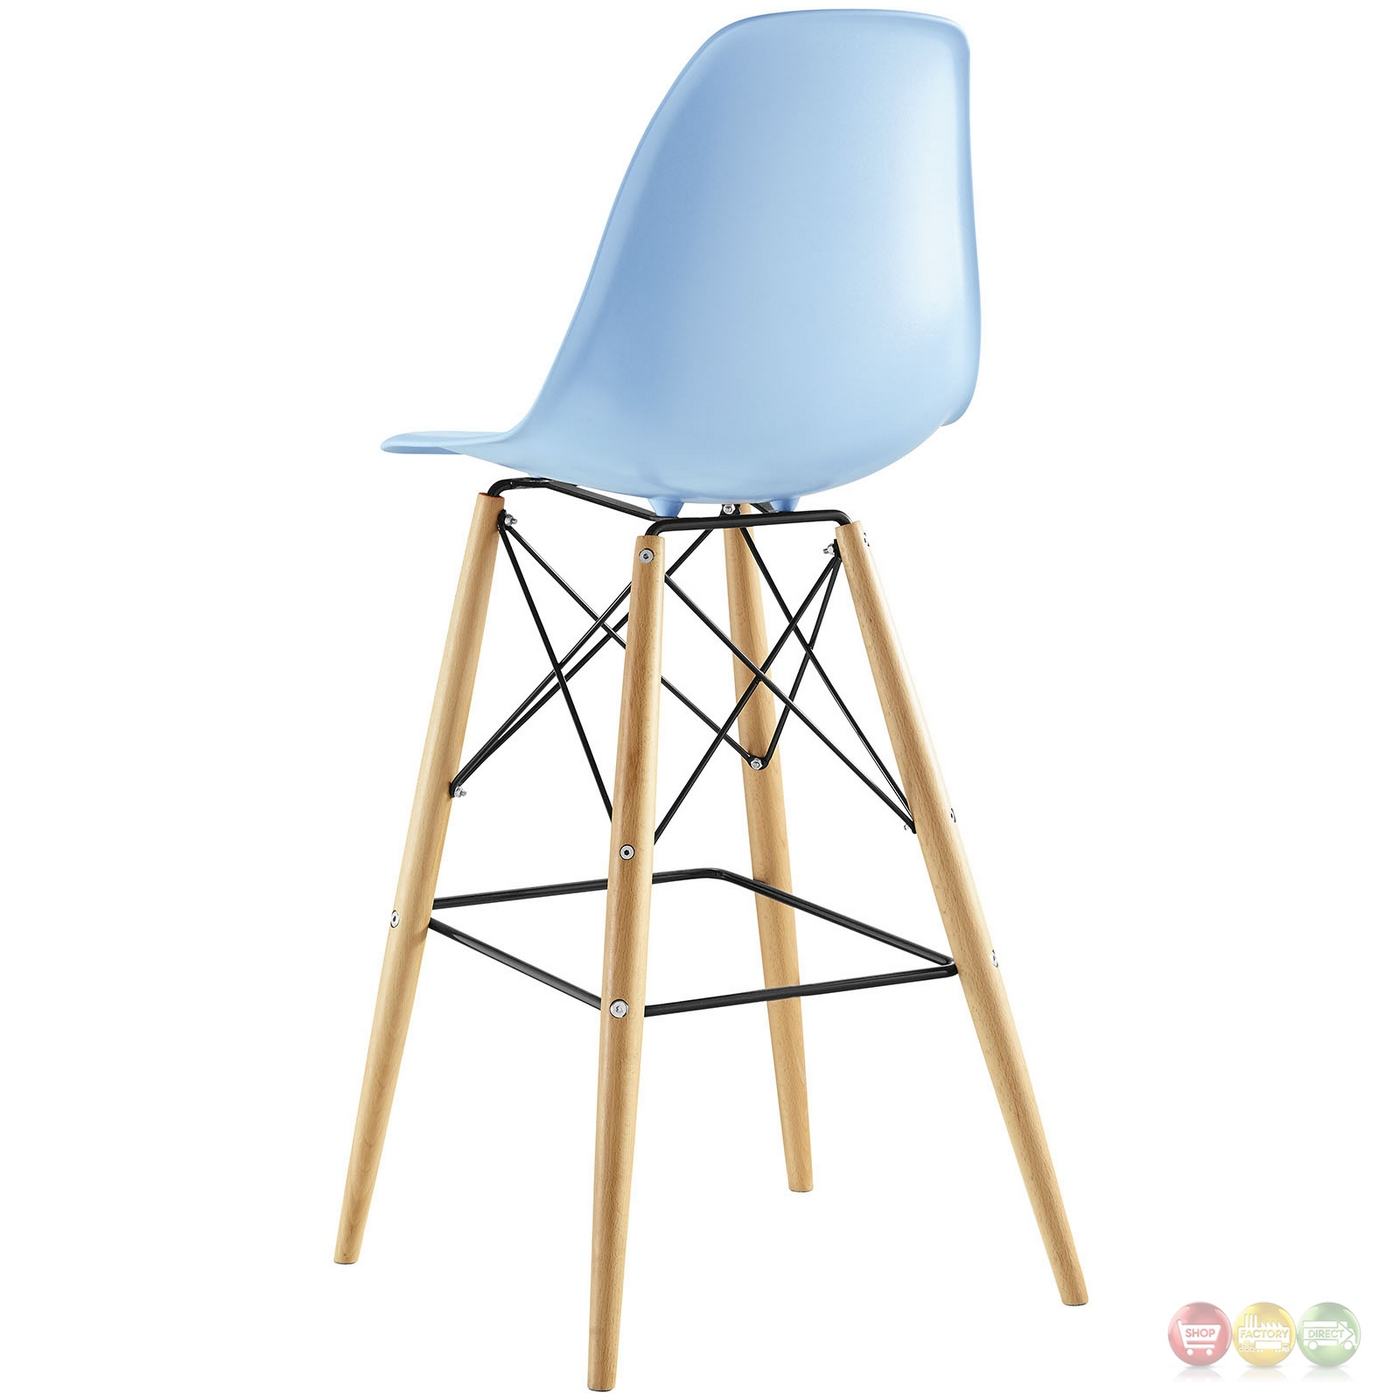 Pyramid Modern Molded Plastic Bar Stool With Wood Legs